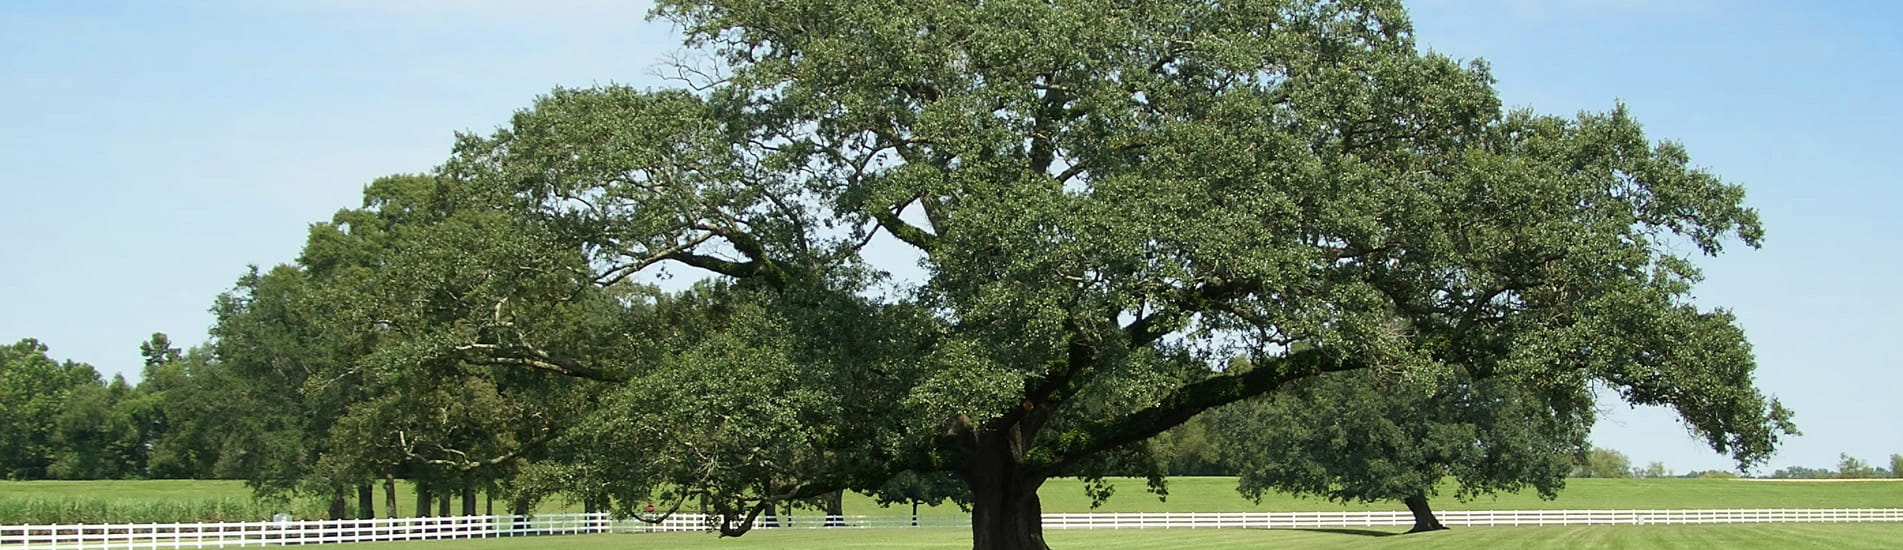 Second Opinion - Oak Tree